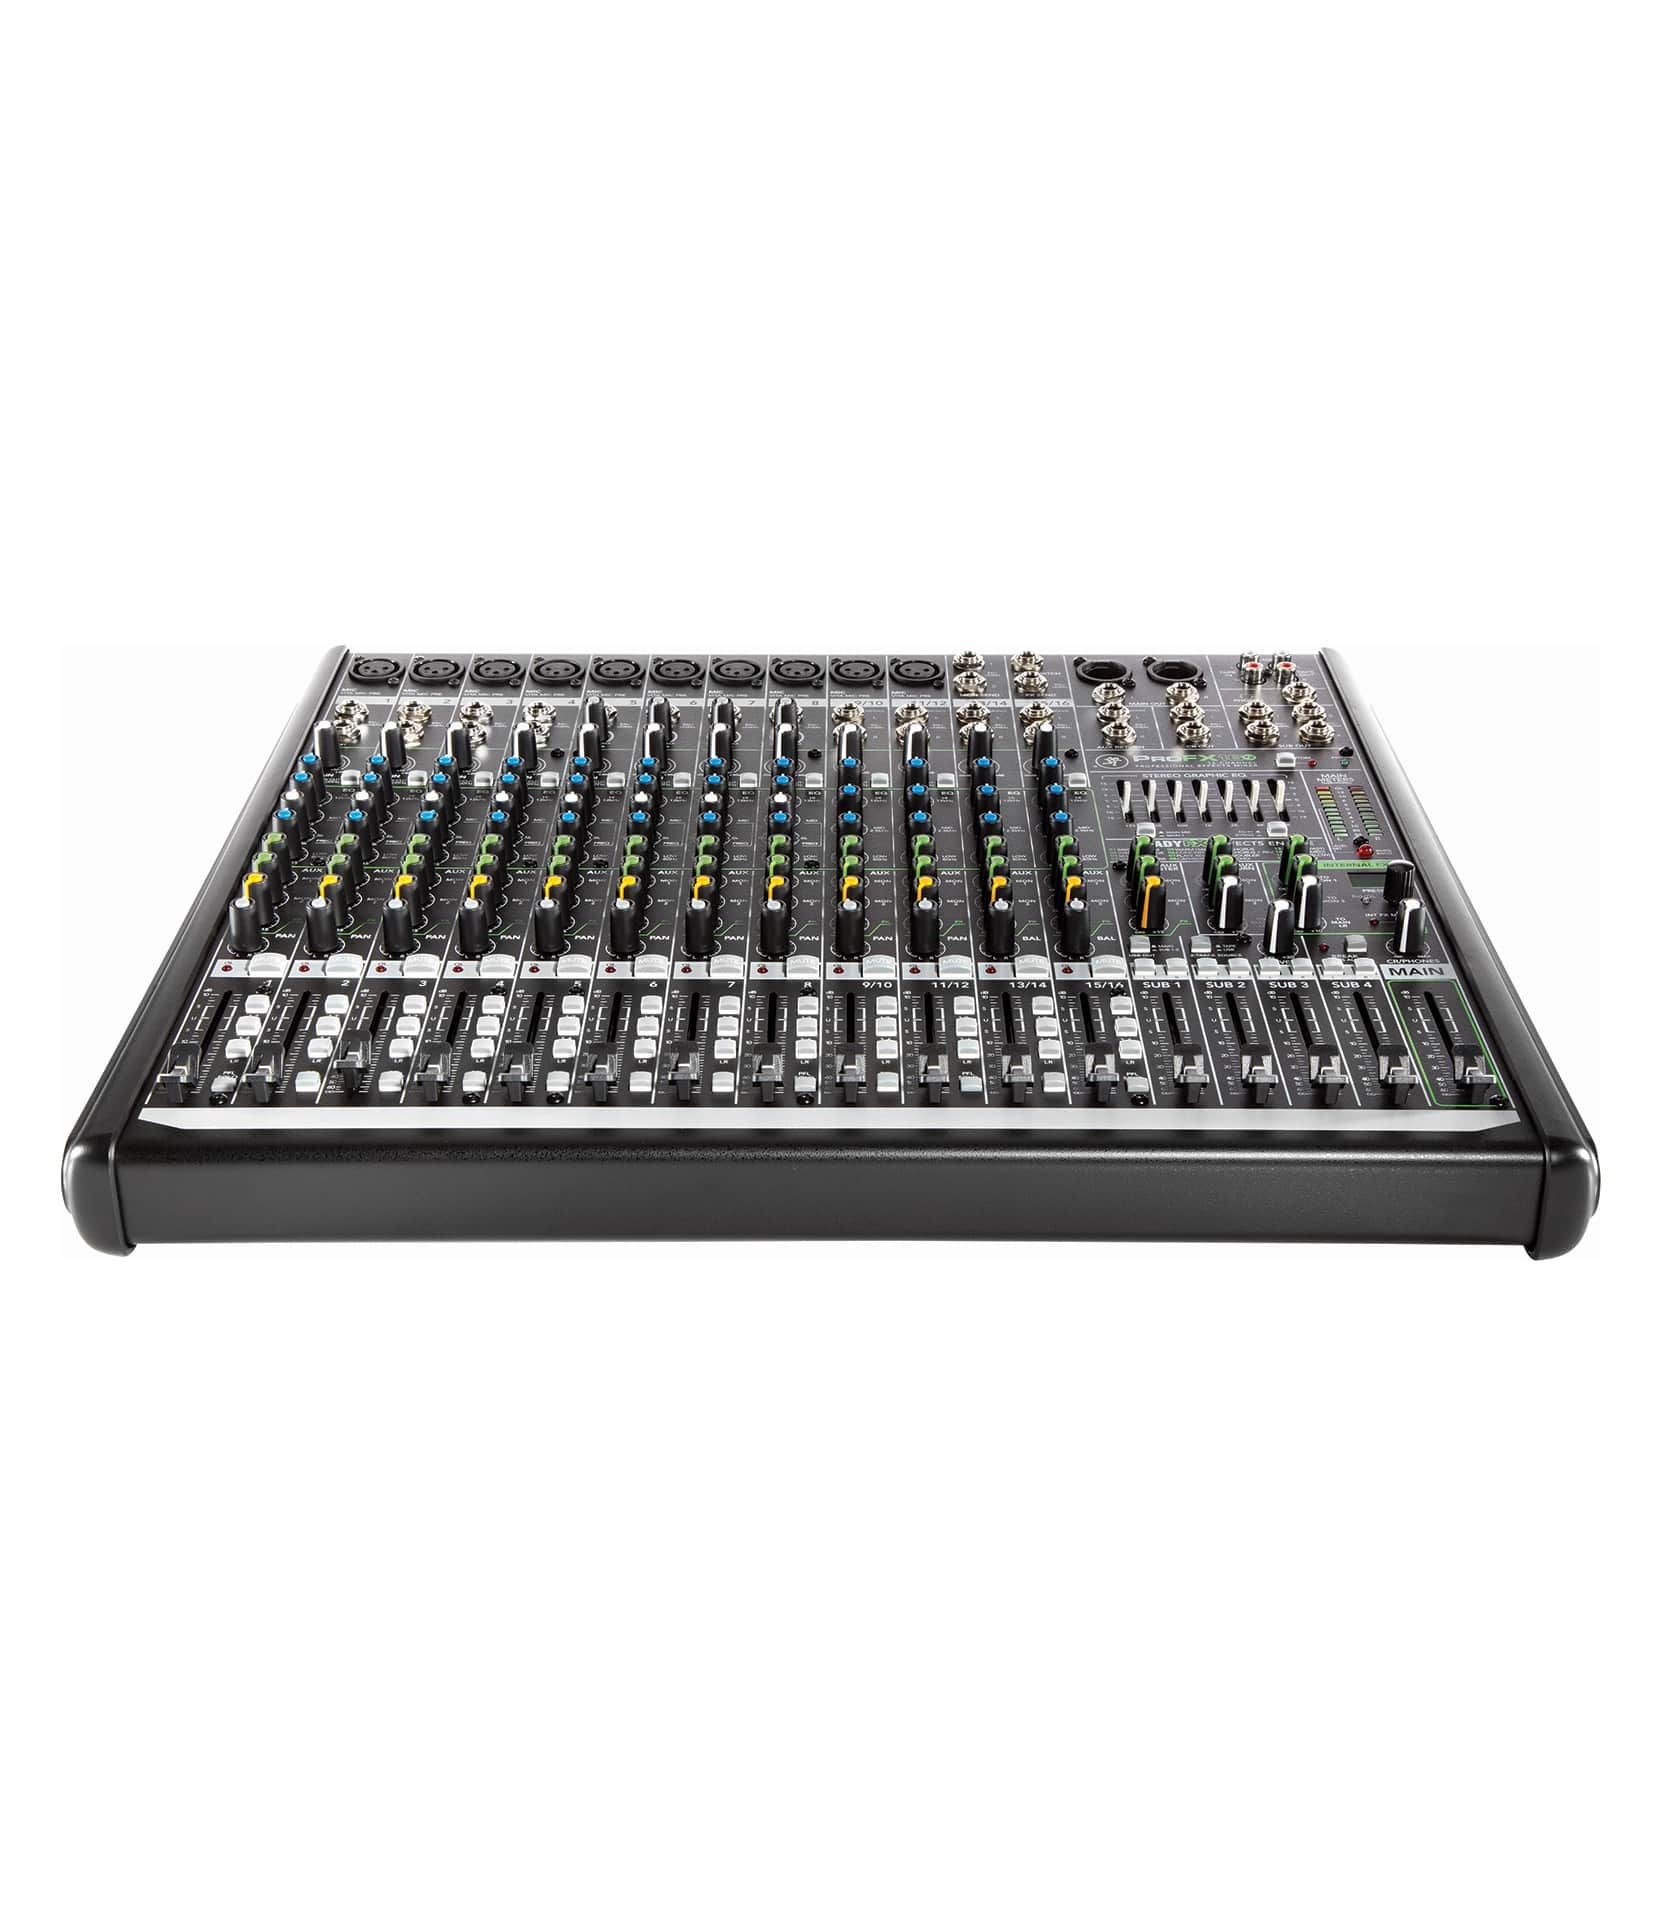 Mackie - ProFX16v2 16 Channel 4 Bus Effects Mixer UK Plug - info@melodyhousemi.com